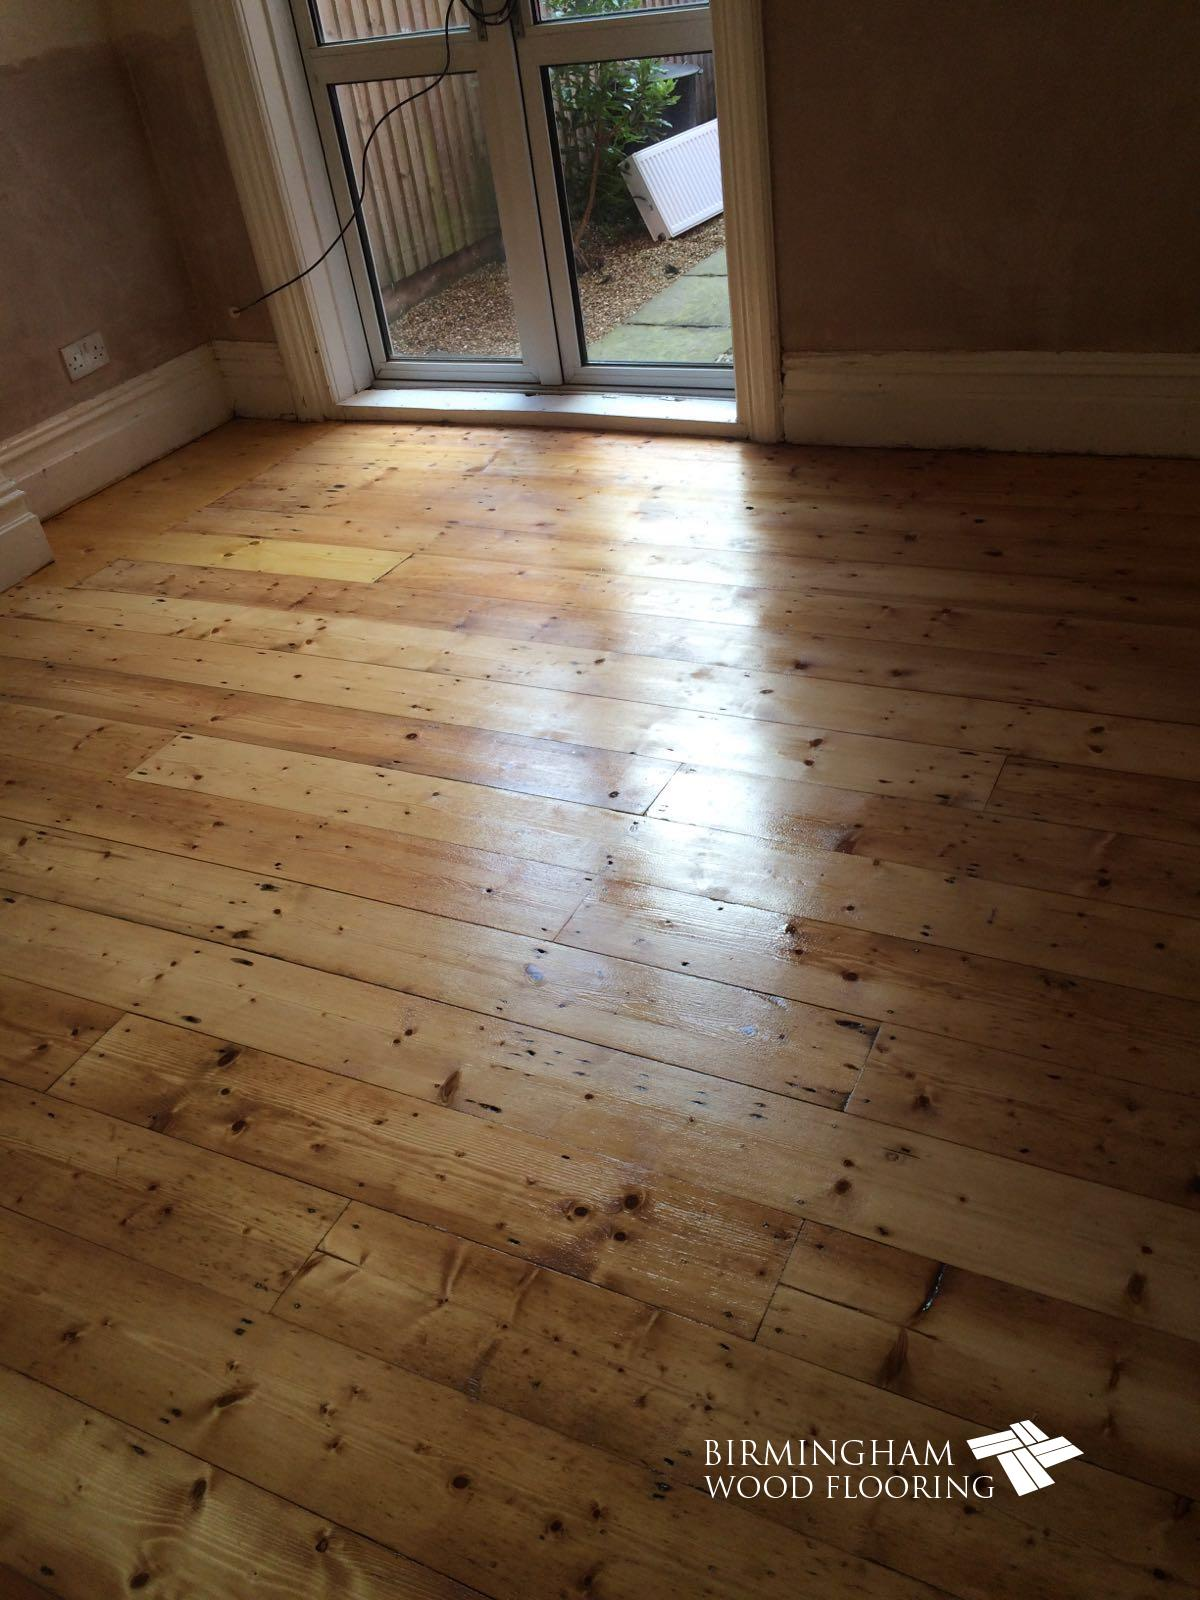 Wood-floor-sanded-and-lacquered-3